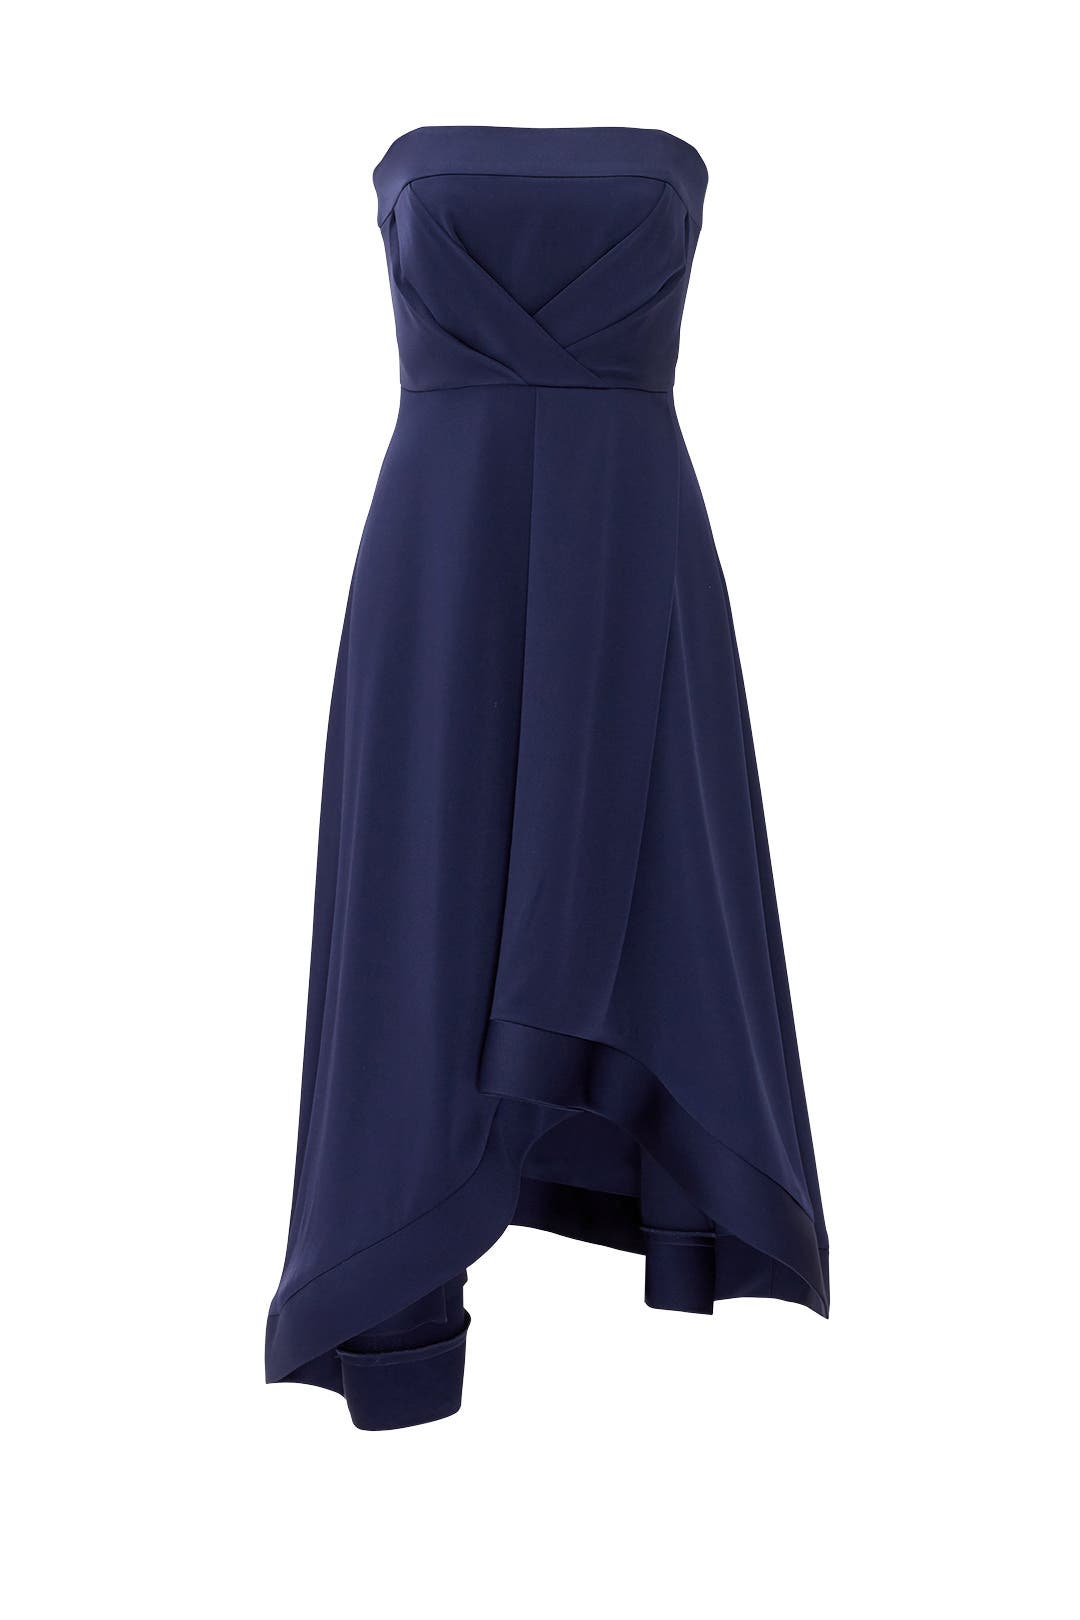 Navy Estella Dress by Shoshanna for $85 - $95 | Rent the Runway